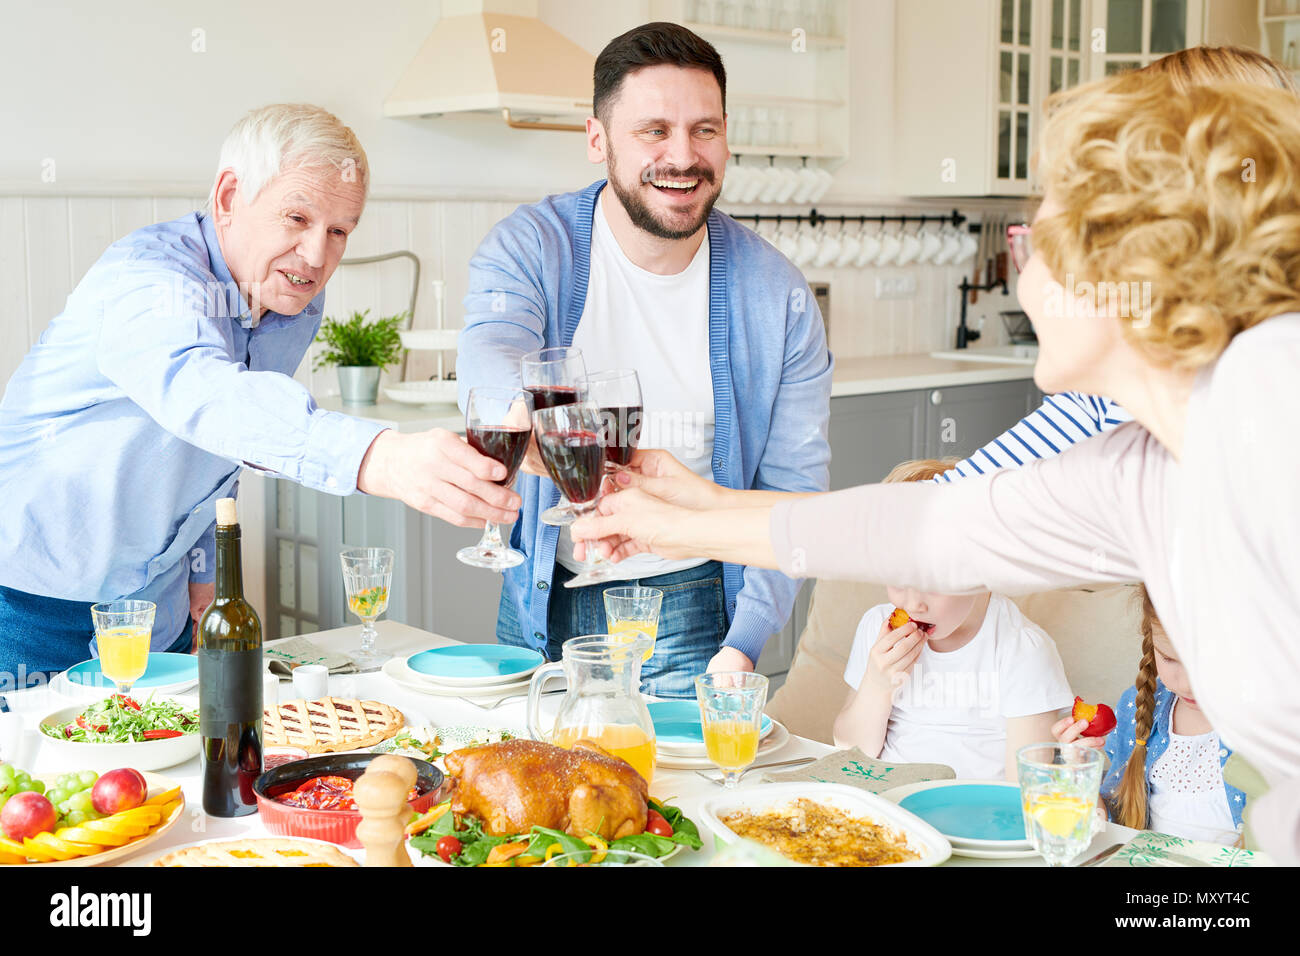 Portrait of happy two generation  family enjoying dinner together clinking glasses and toasting standing at festive table during  holiday  celebration - Stock Image